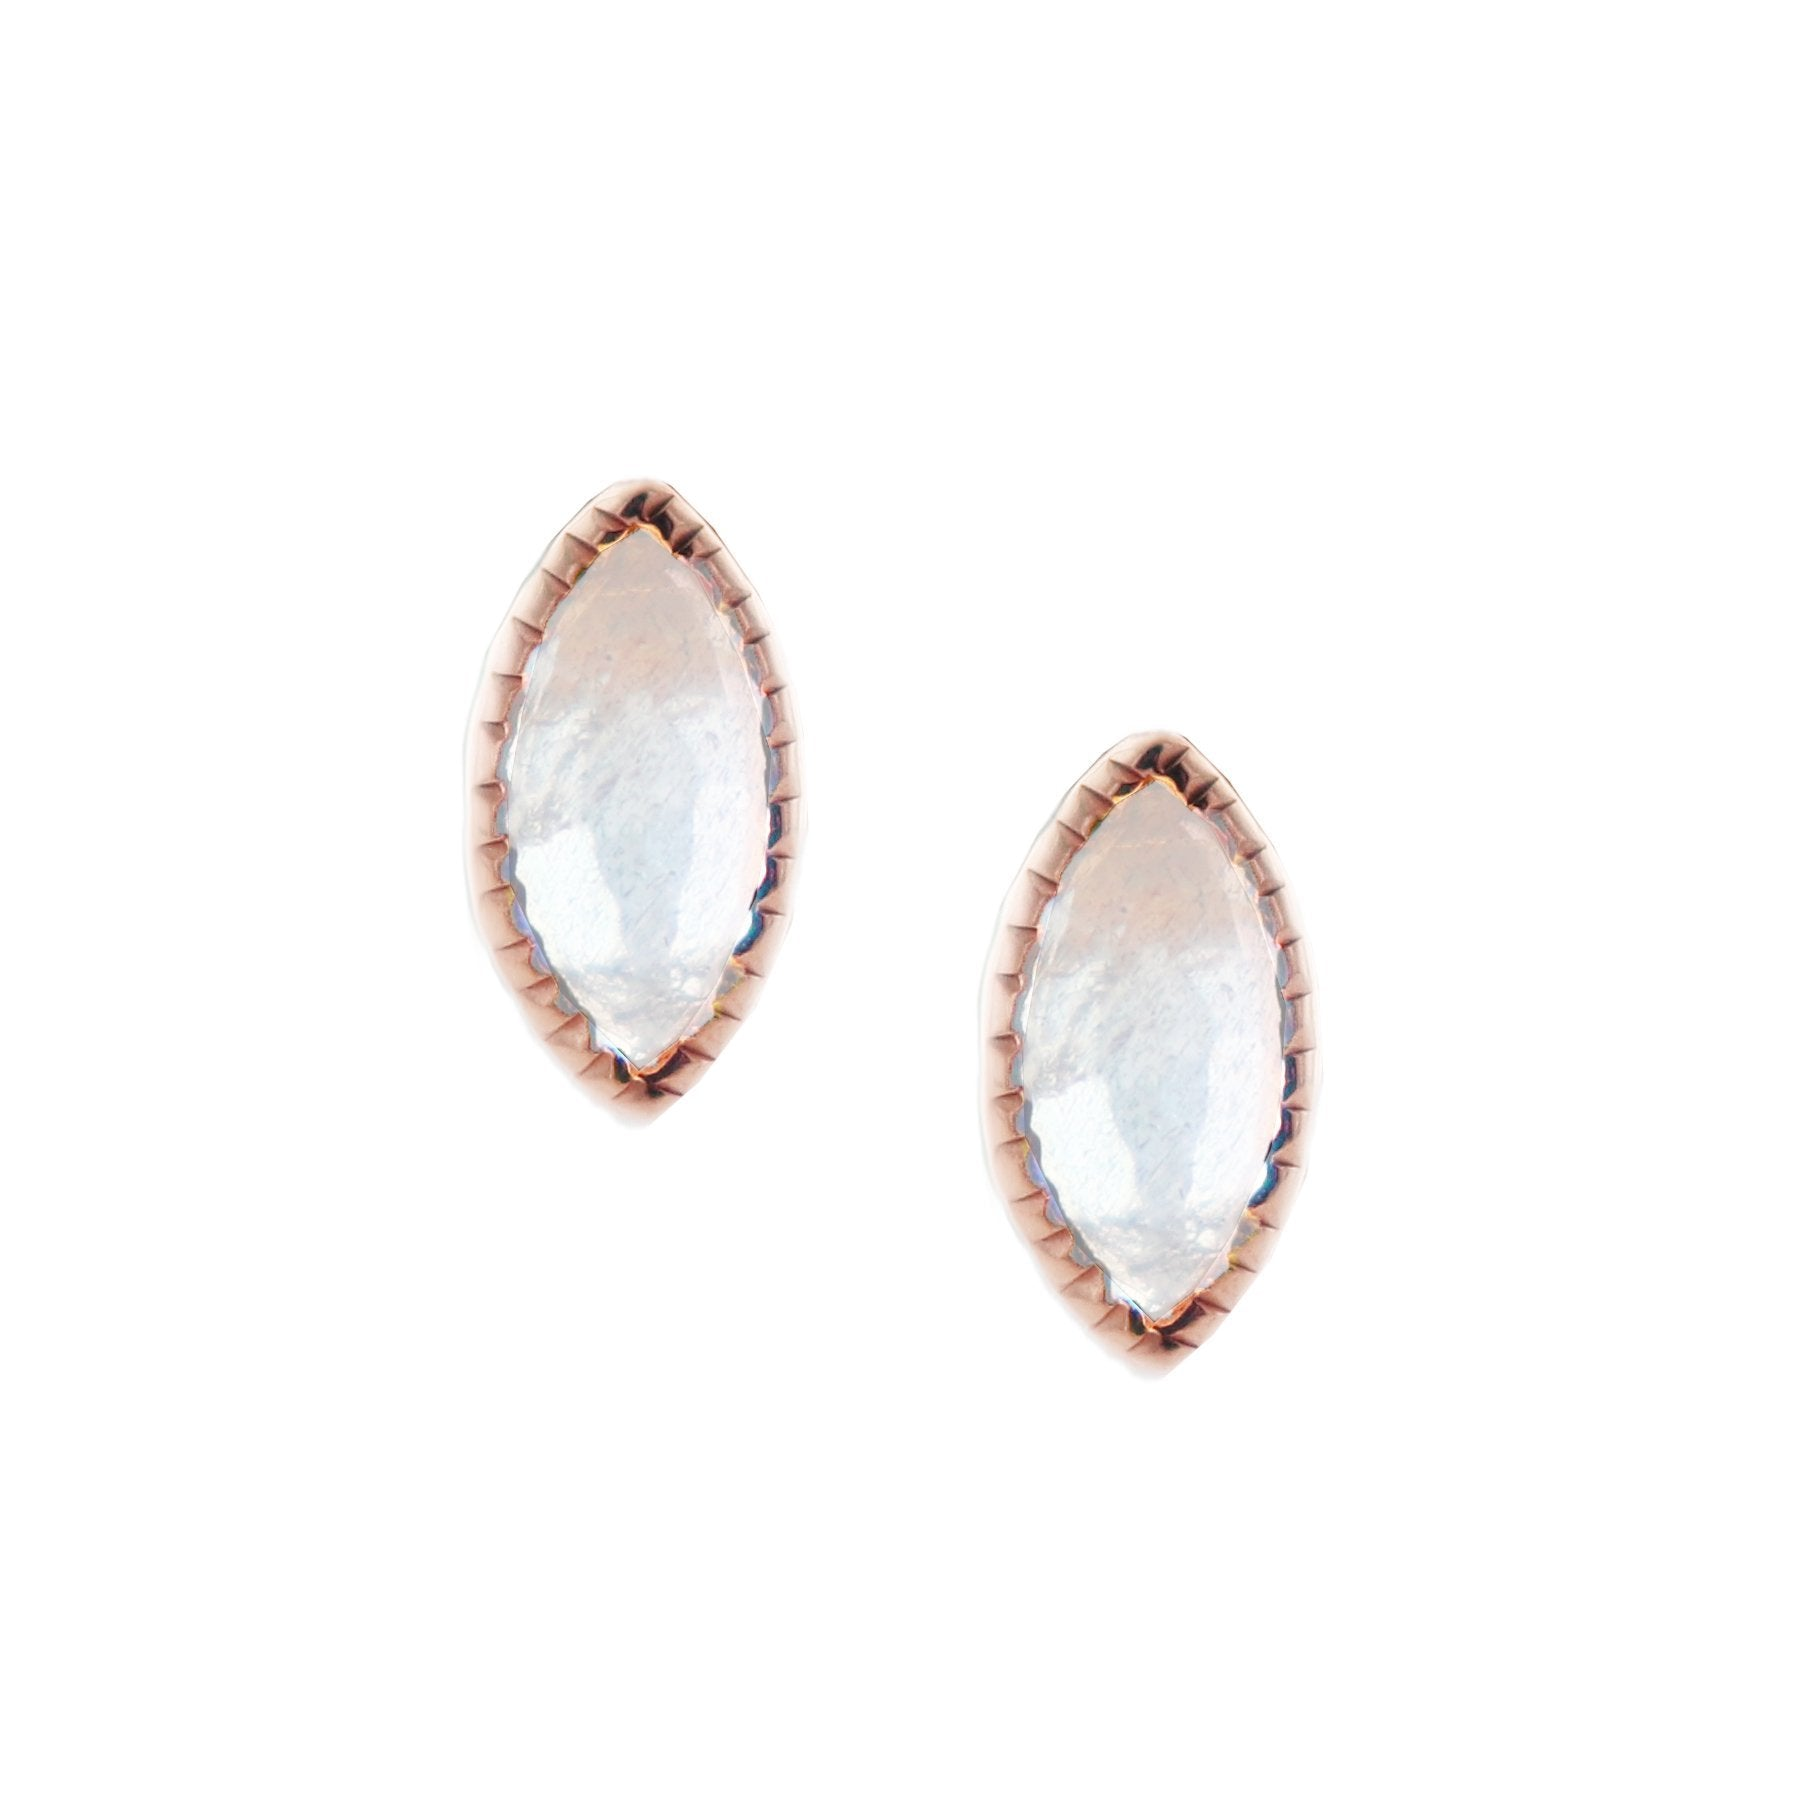 MINI TRUST STUD EARRINGS - MOONSTONE & ROSE GOLD - SO PRETTY CARA COTTER